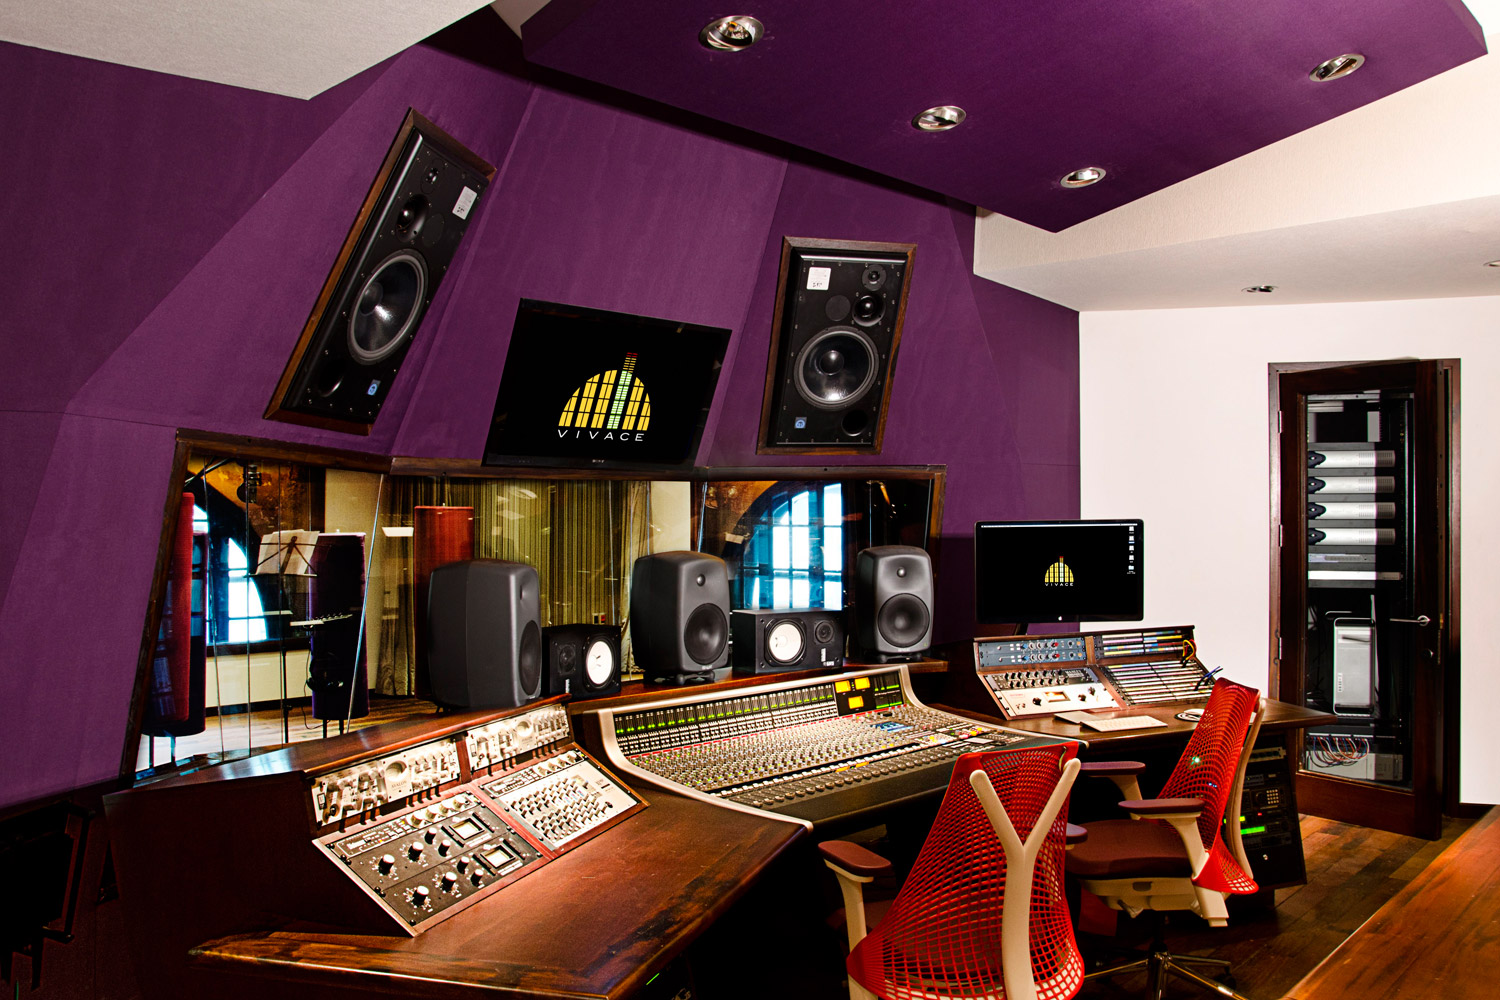 Vivace Music Studio in Montevideo, Uruguay. Professional recording studio designed and built by WSDG. Project manager WSDG partner Sergio Molho, and Representative Gonzalo Ruiz. Control Room A side view.